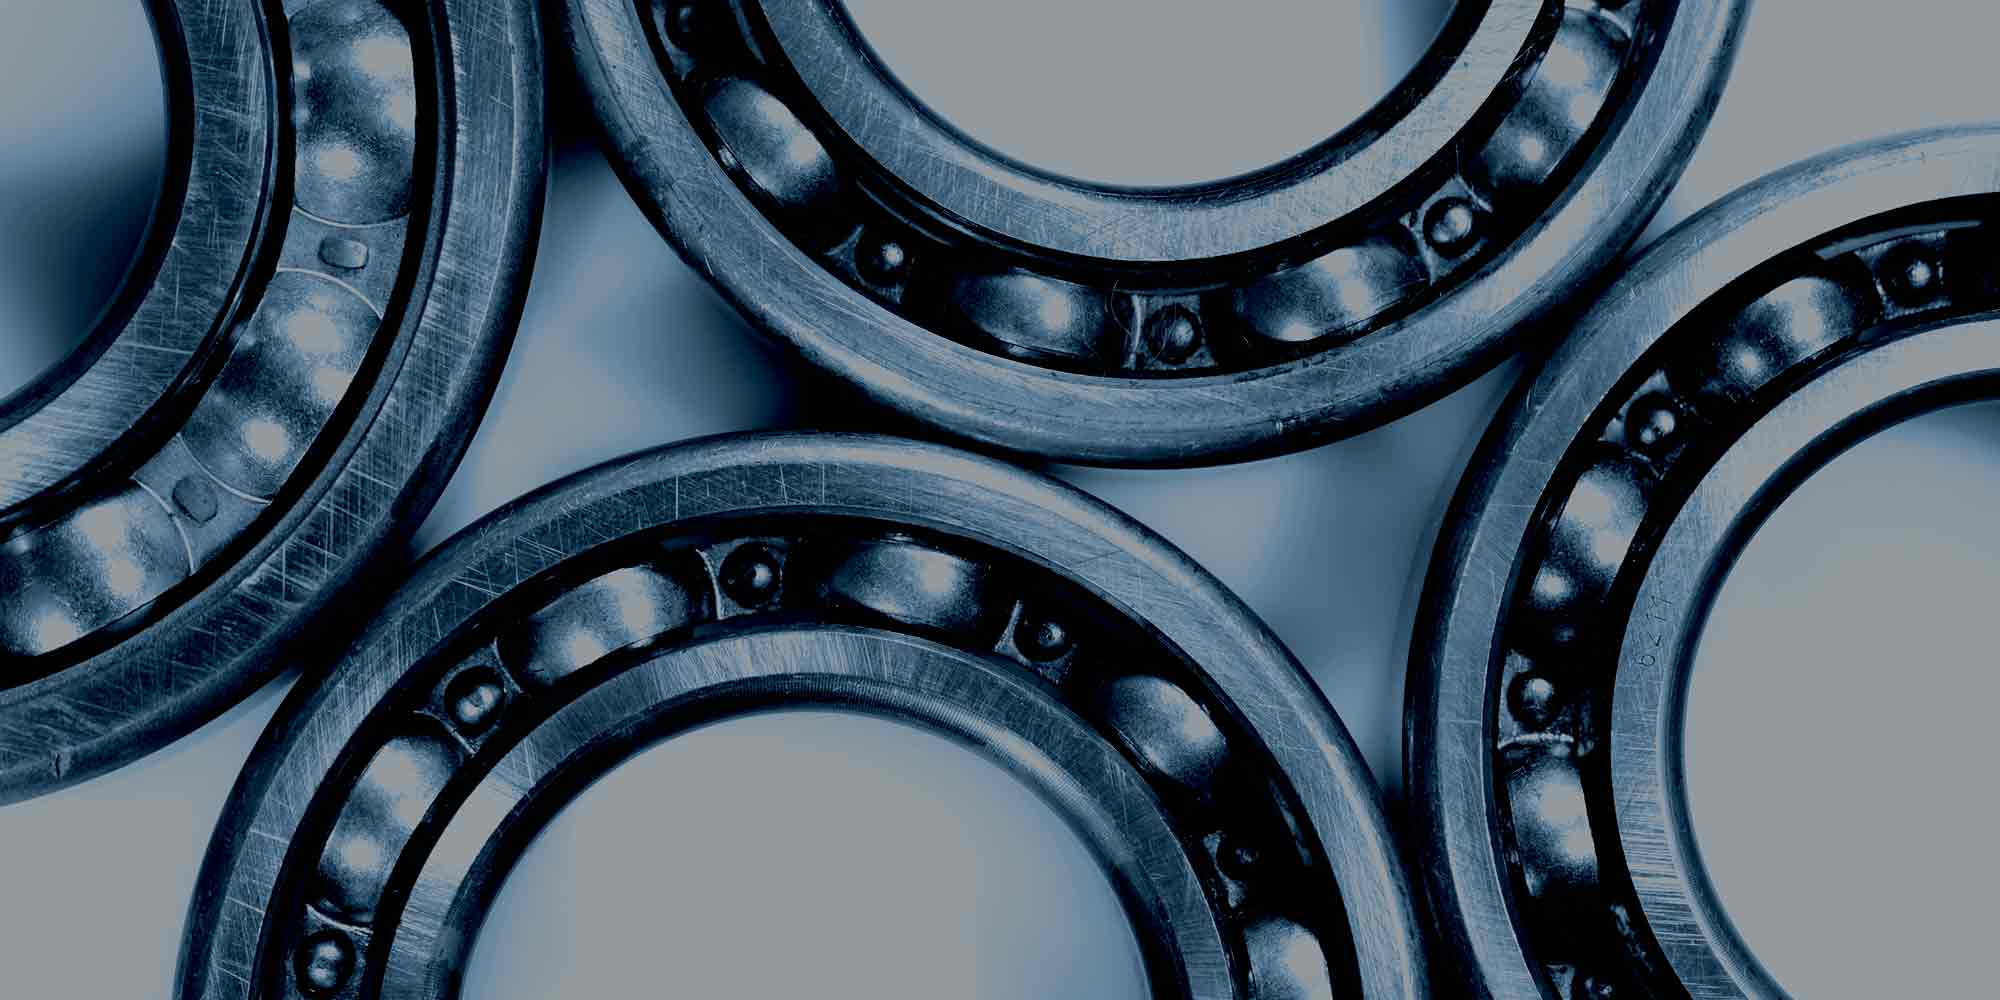 manufacture-image